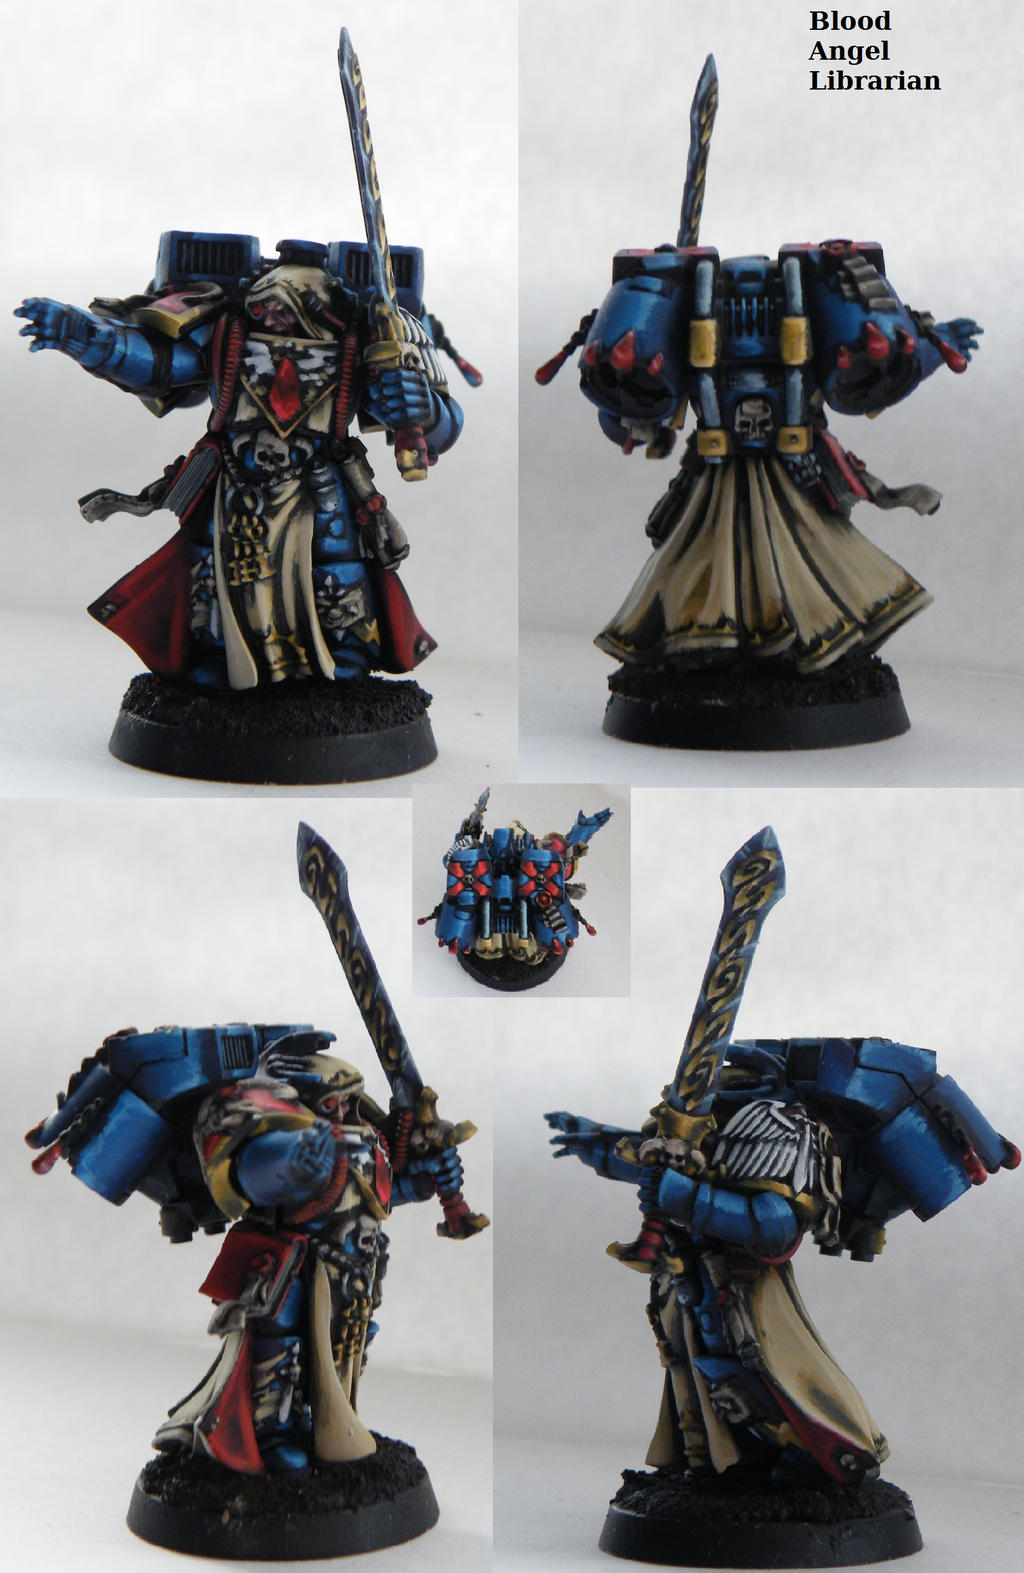 NMM Blood Angels Librarian by will-i-am119